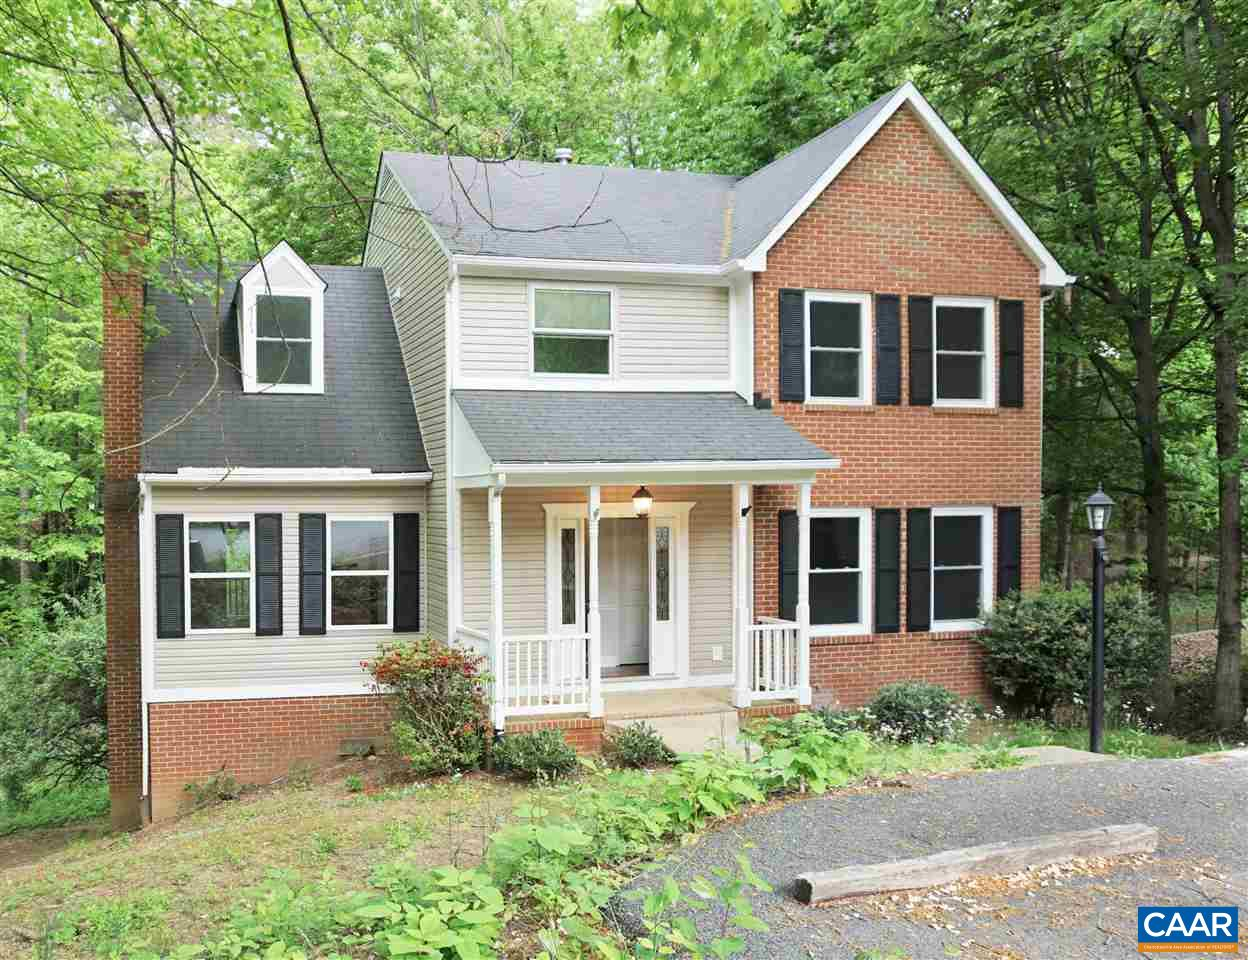 home for sale , MLS #576291, 1810 Steeplechase Run